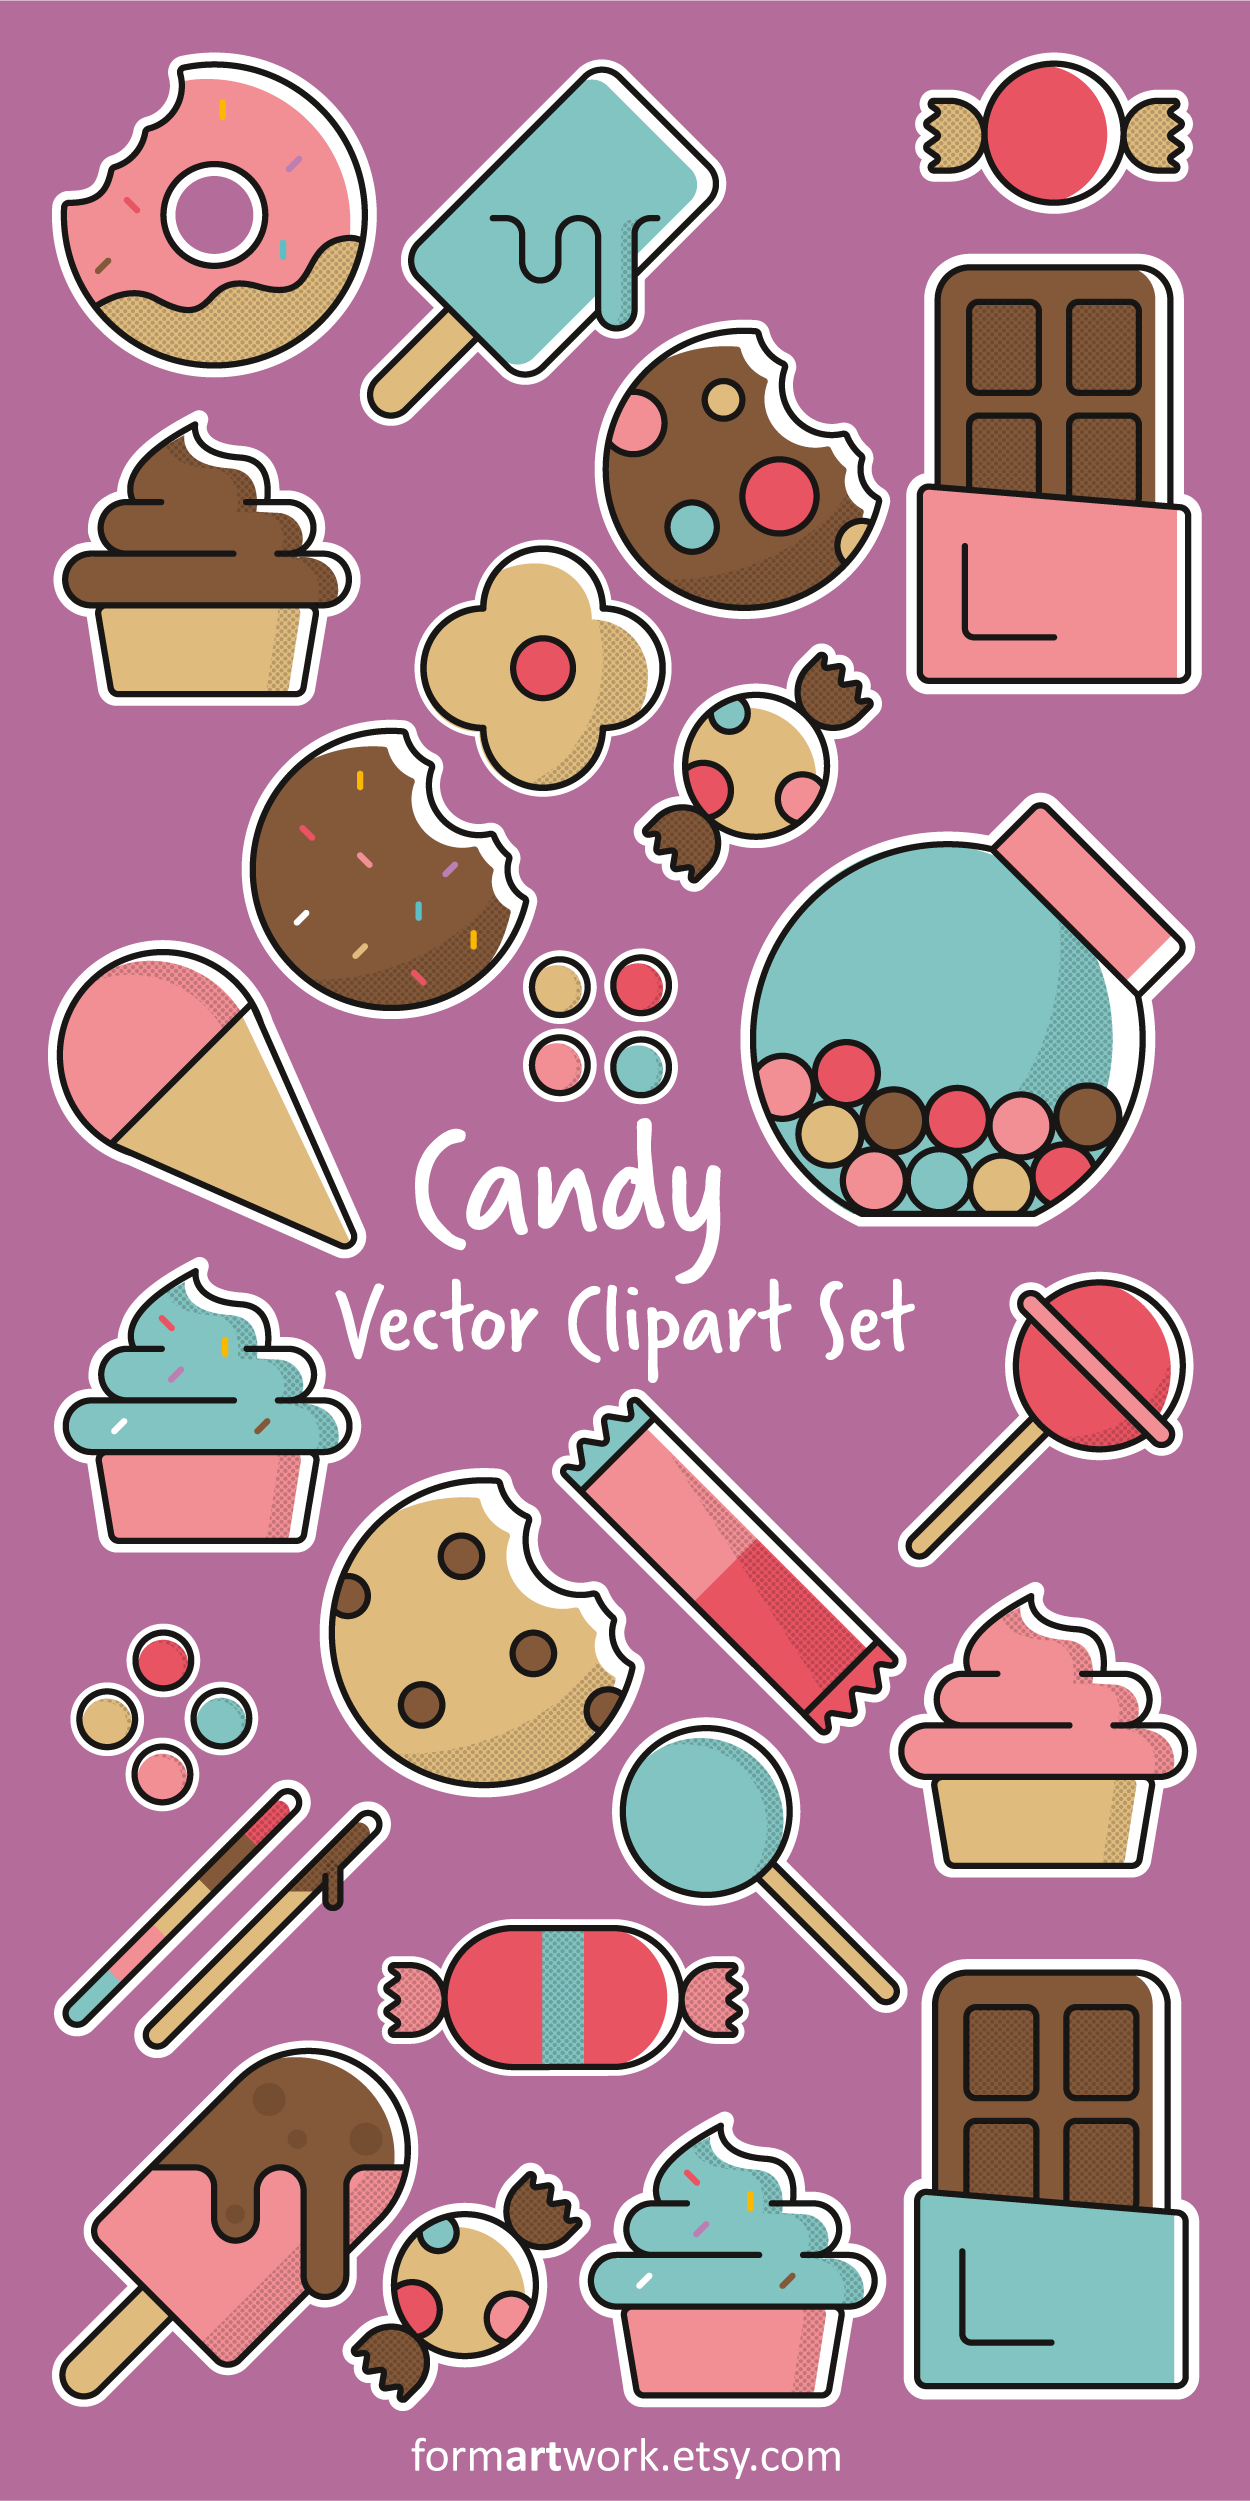 Candy Vector Clipart Commercial Use.